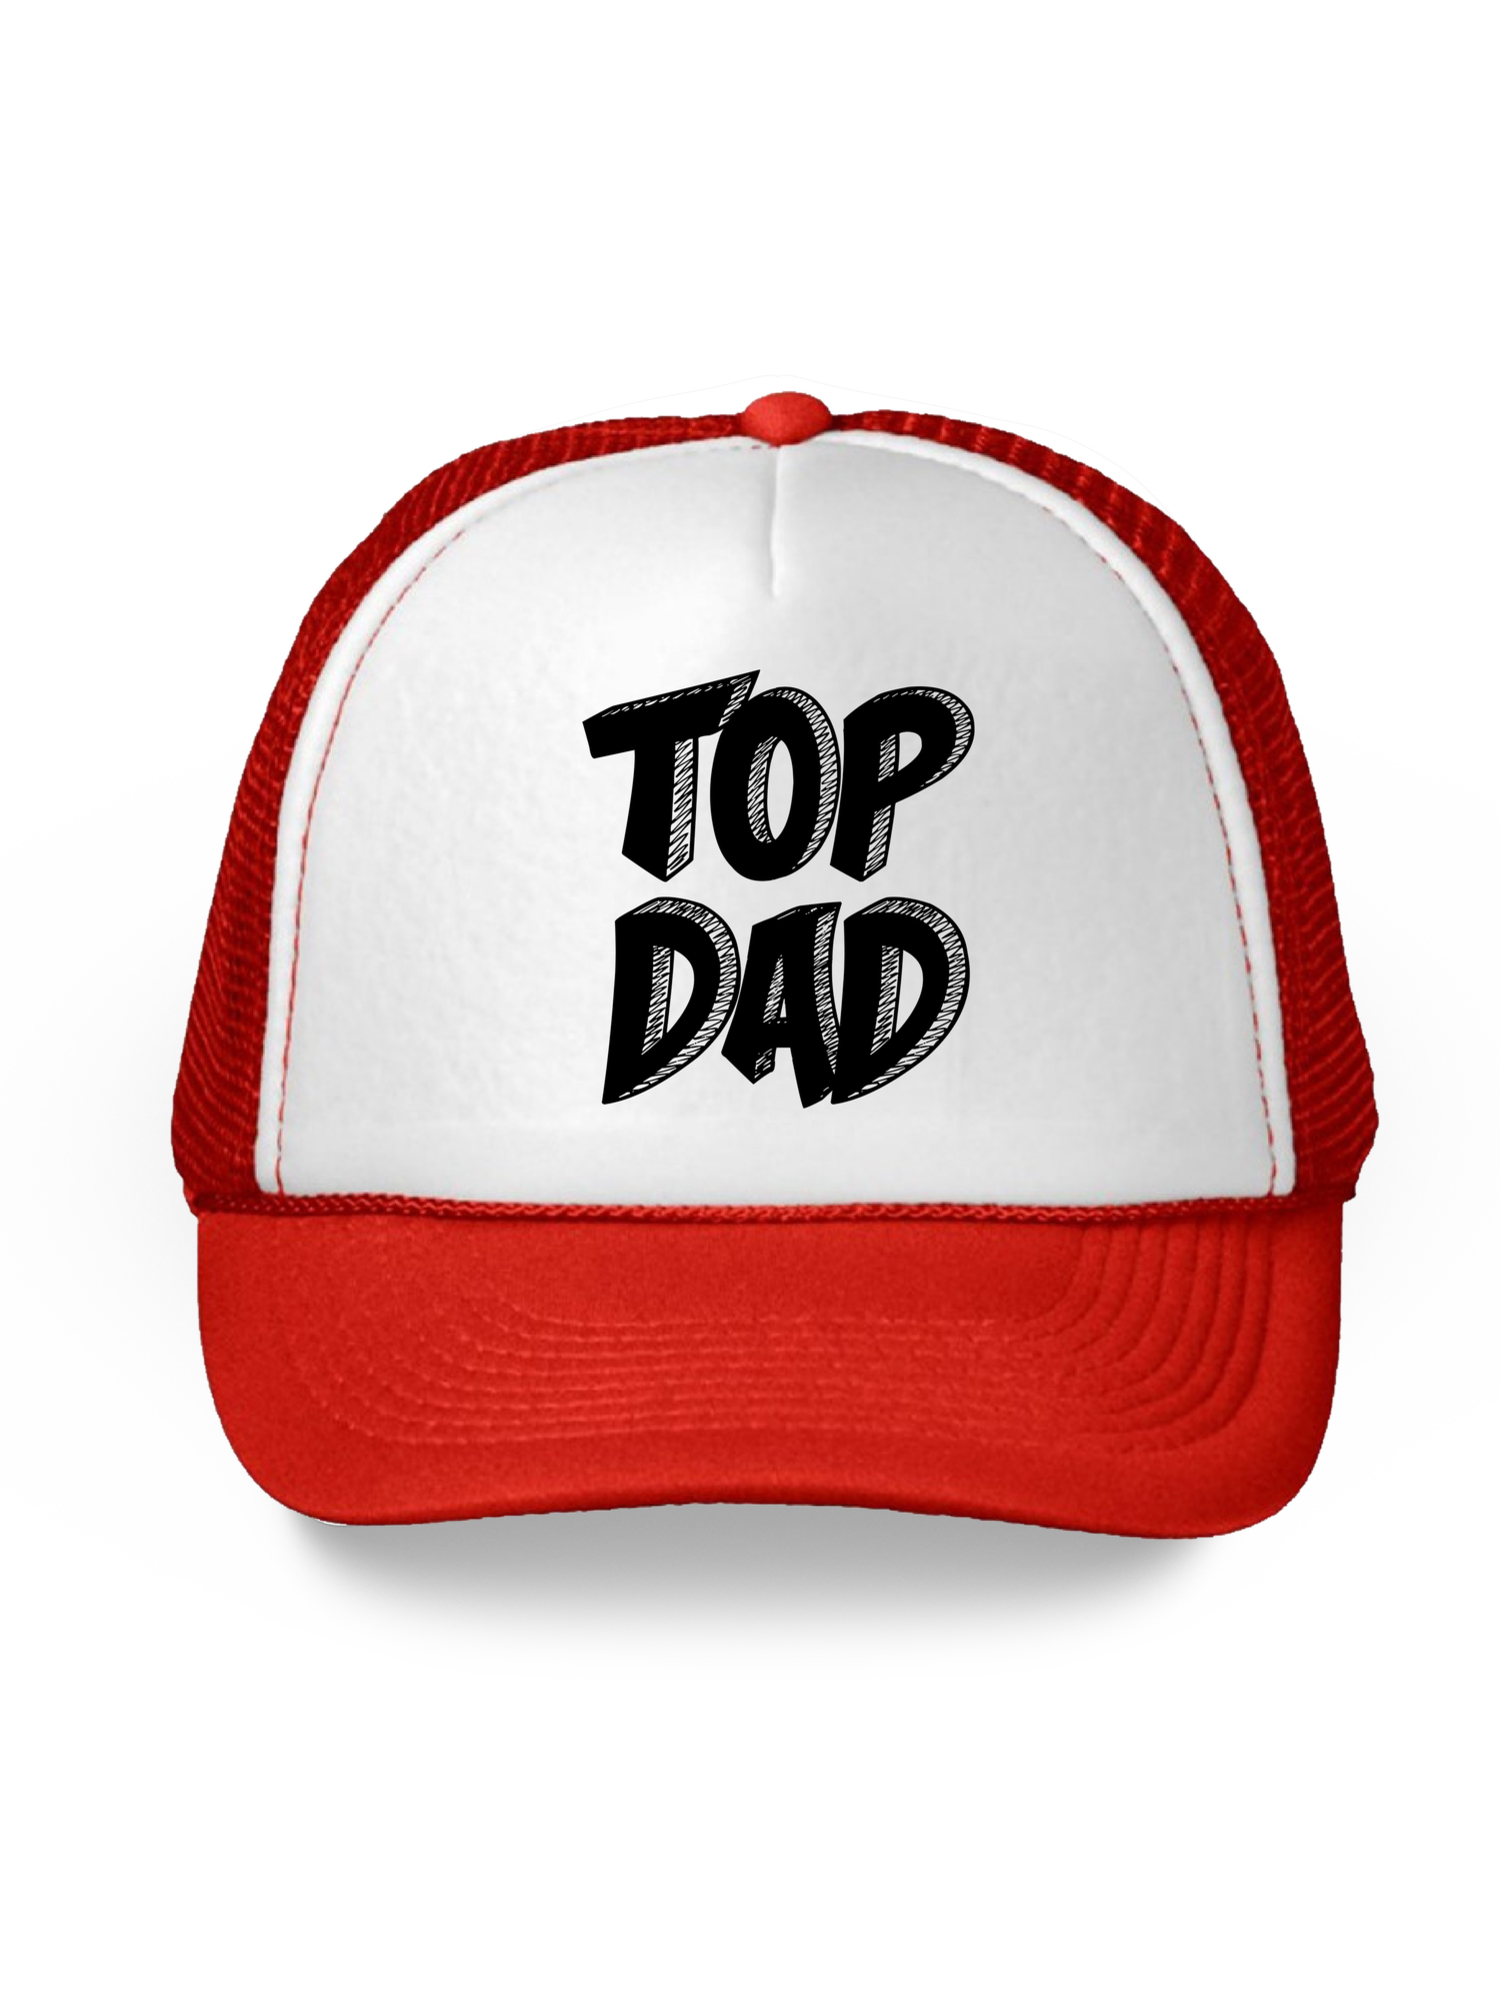 Awkward Syles Top Dad Trucker Hat Top Dad Gifts for Father s Day Best Dad  Ever Trucker Hat Dad Accessories Father s Day Gifts Dad 2018 Snapback Hat  Daddy ... b93618a1df5